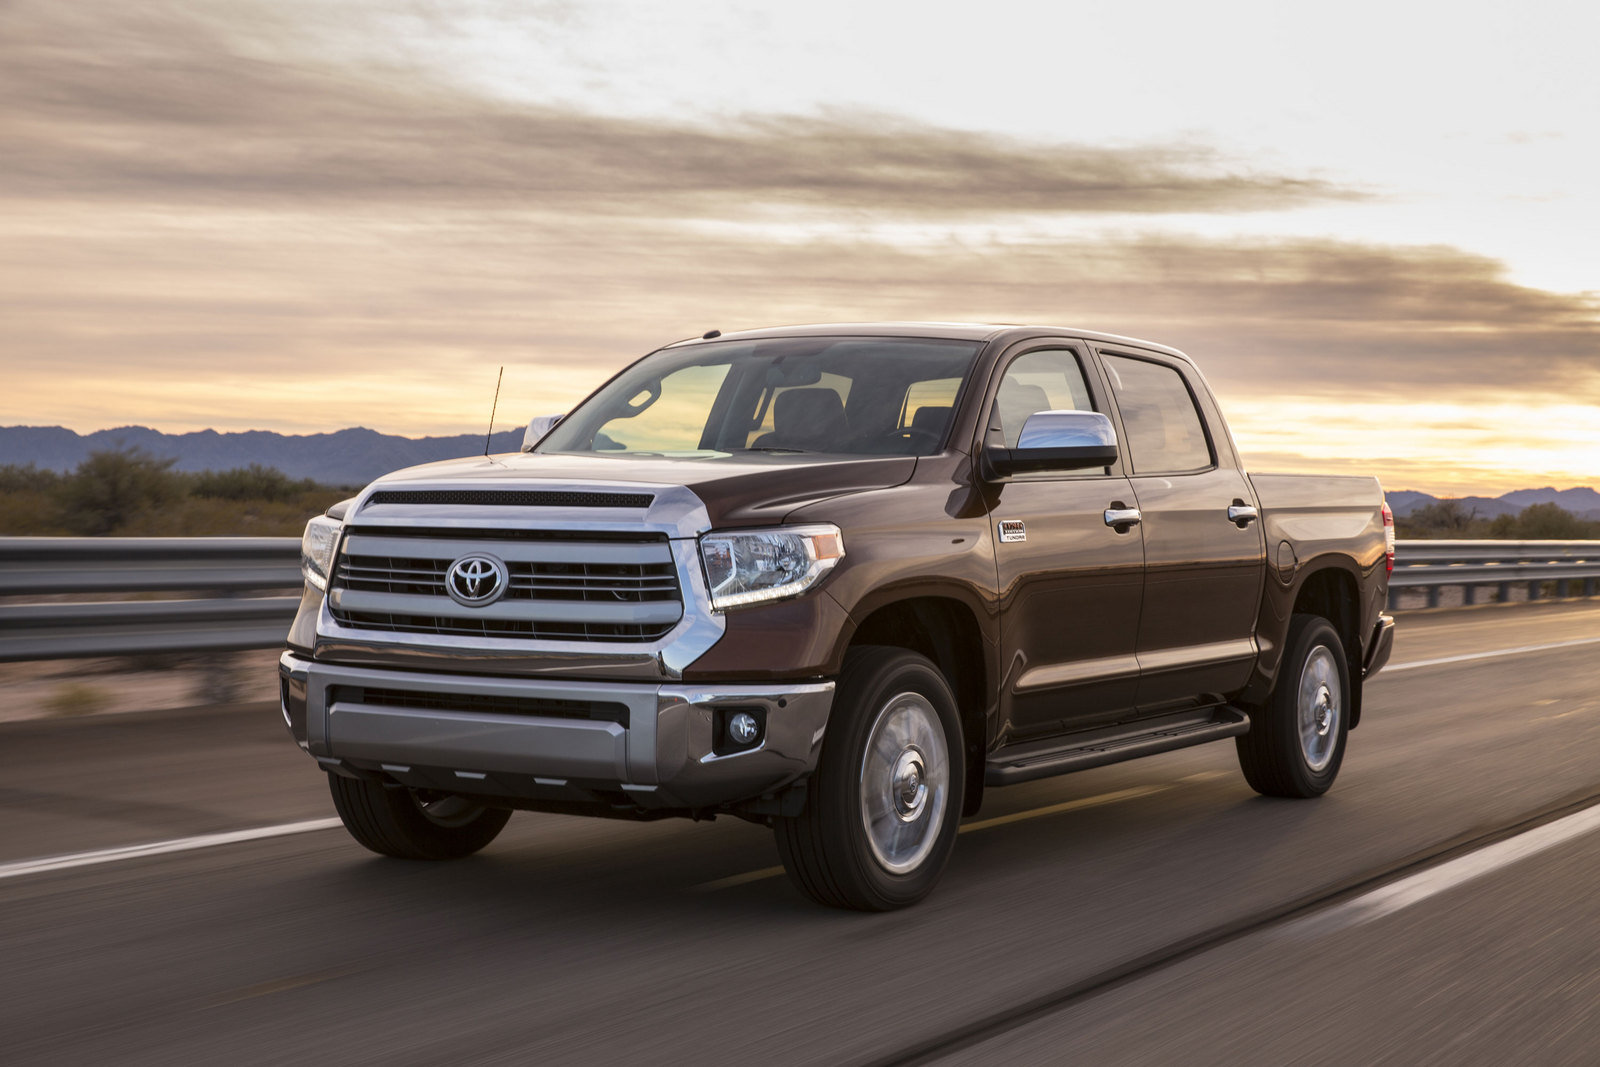 2014 toyota tundra review top speed. Black Bedroom Furniture Sets. Home Design Ideas